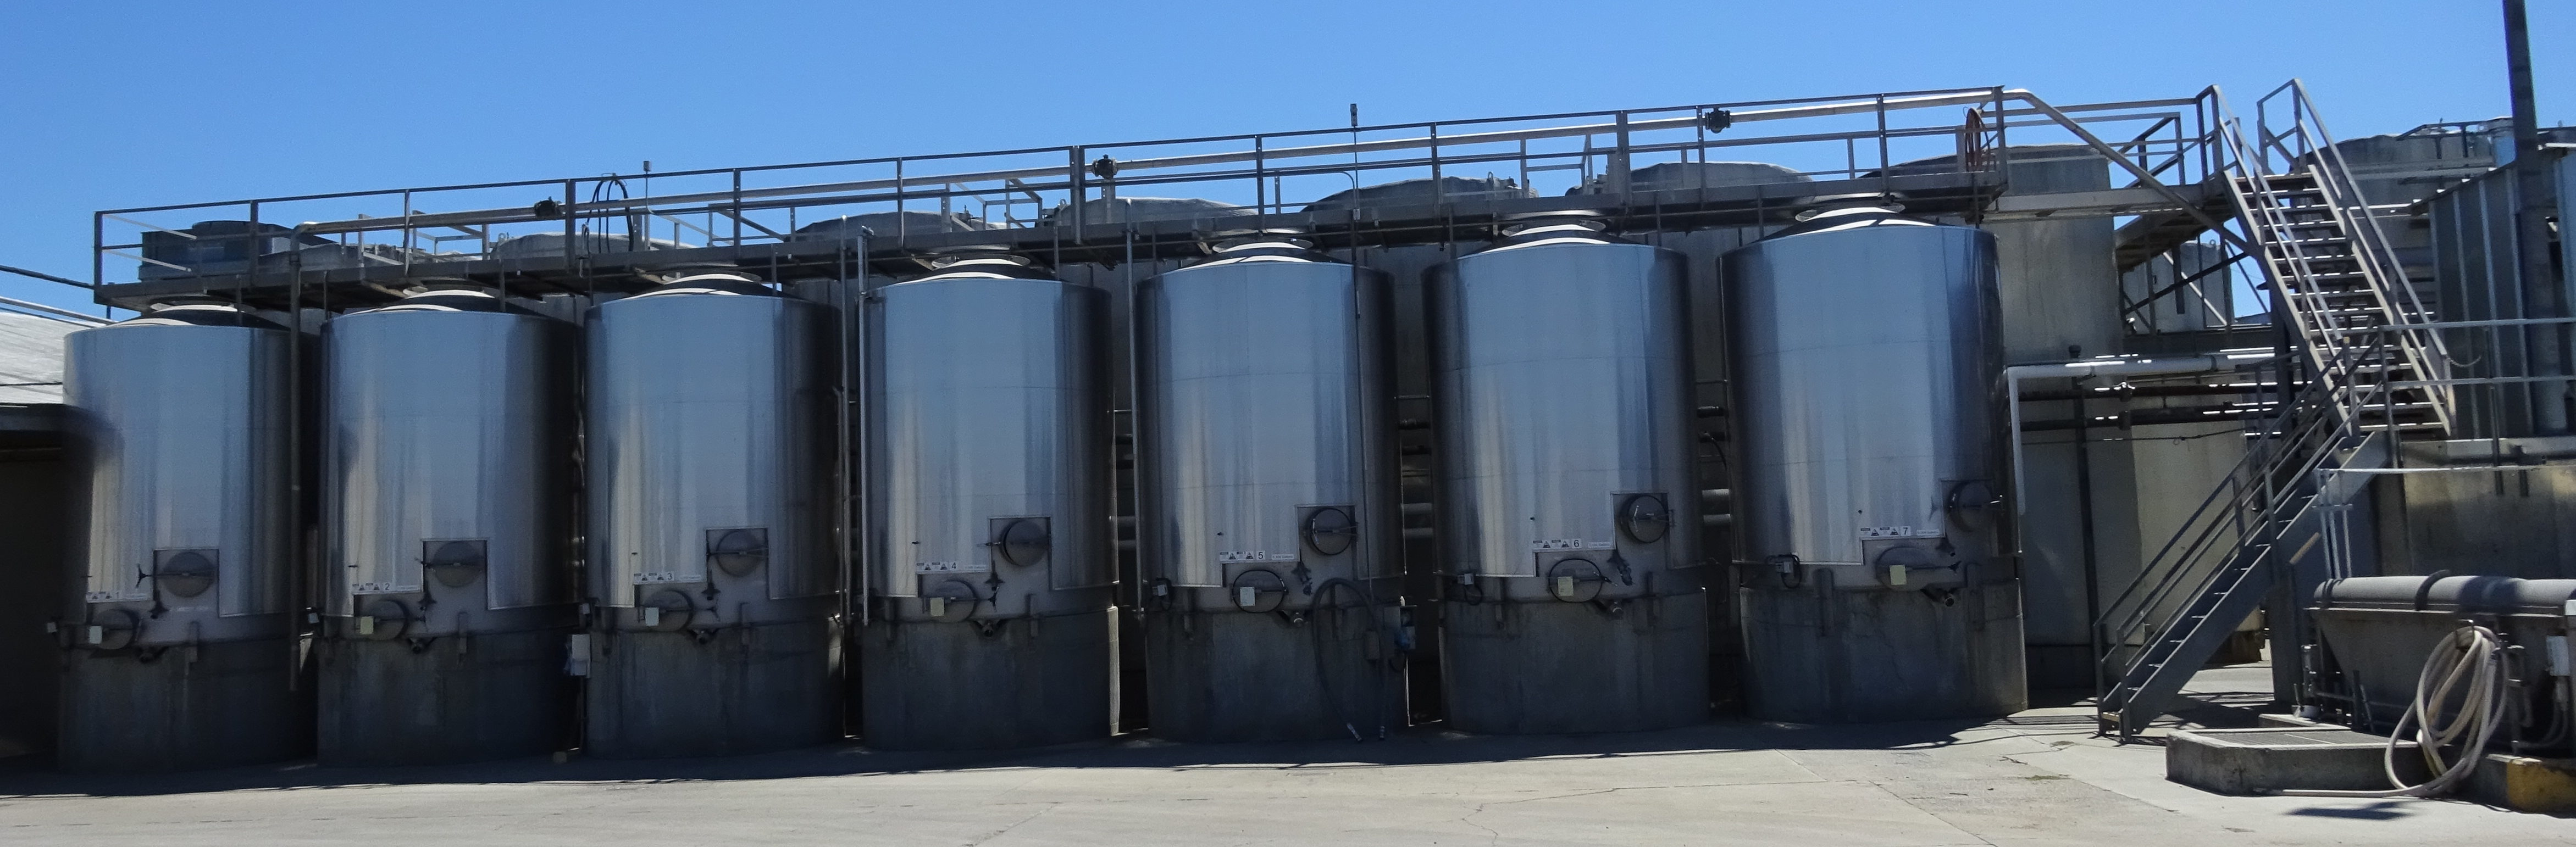 wine tanks in California wine country